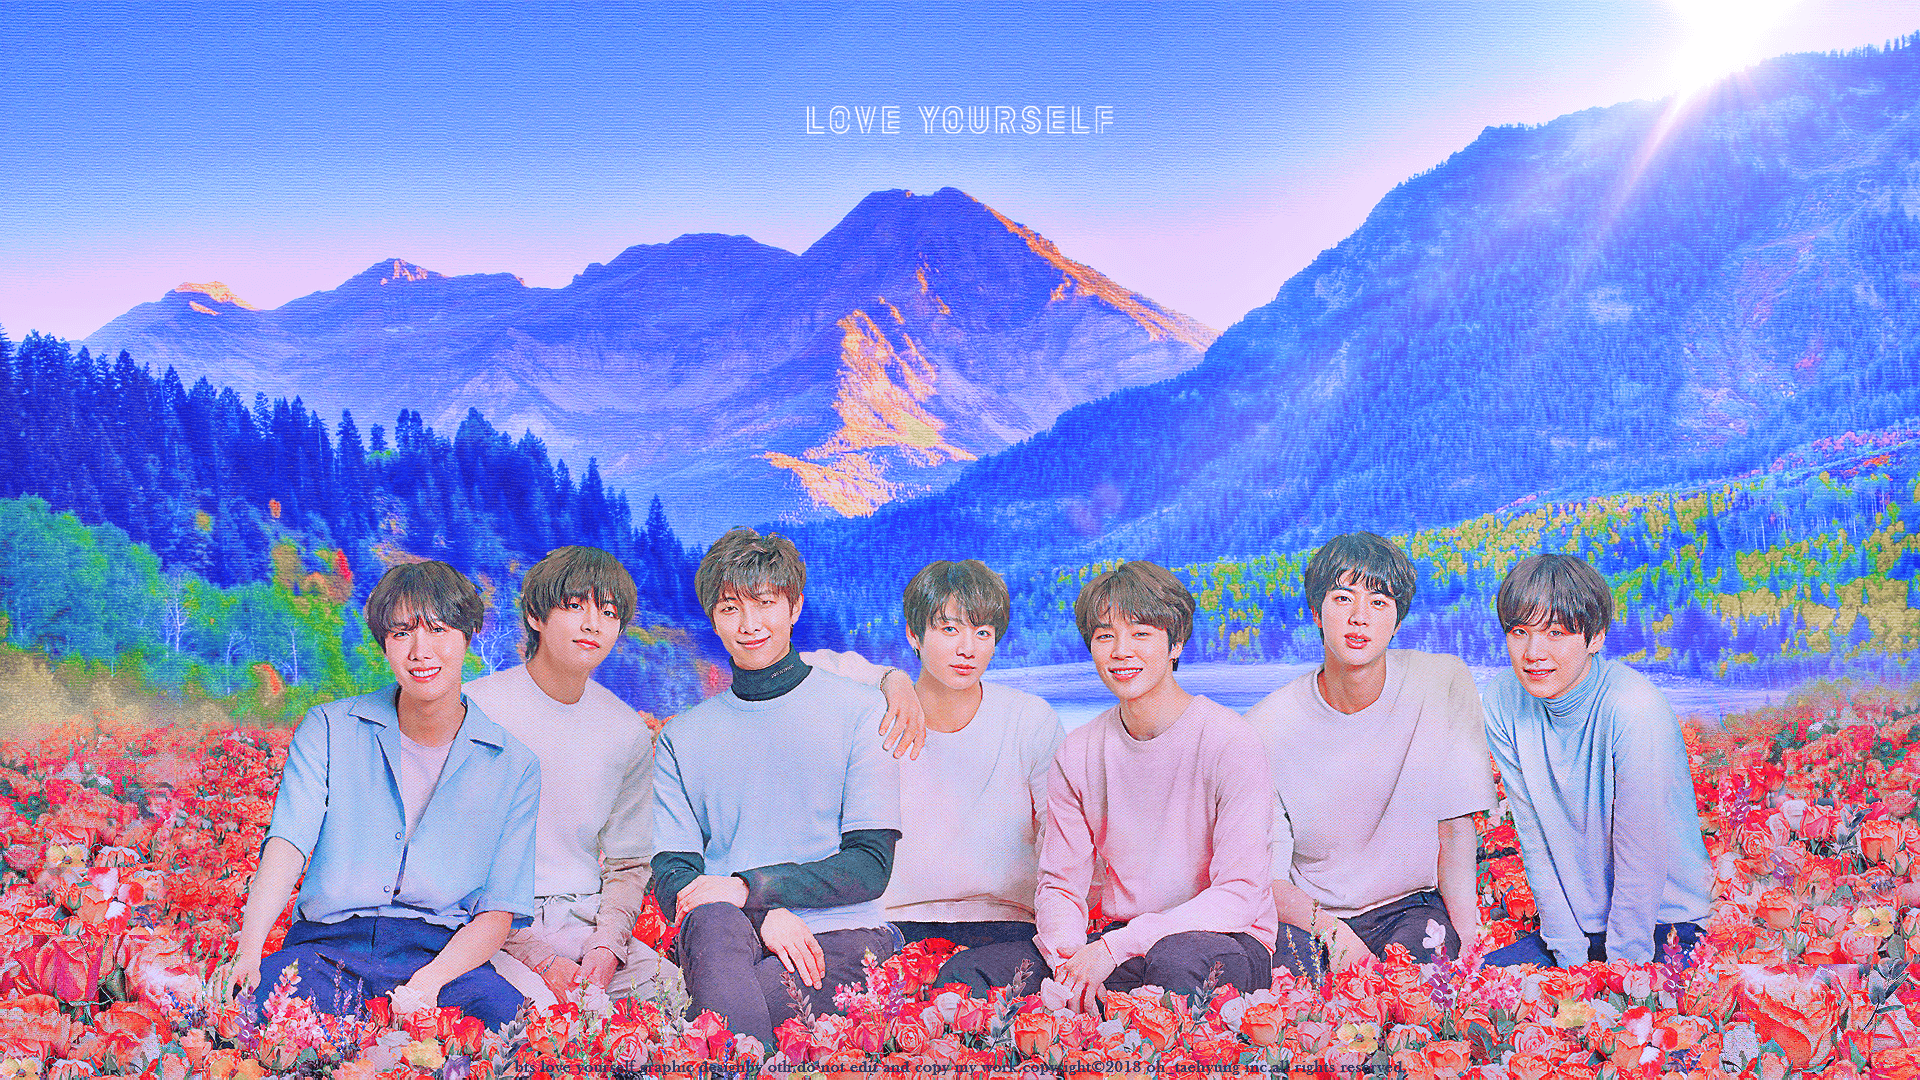 Bts Desktop 2020 Wallpapers Top Free Bts Desktop 2020 Backgrounds Wallpaperaccess